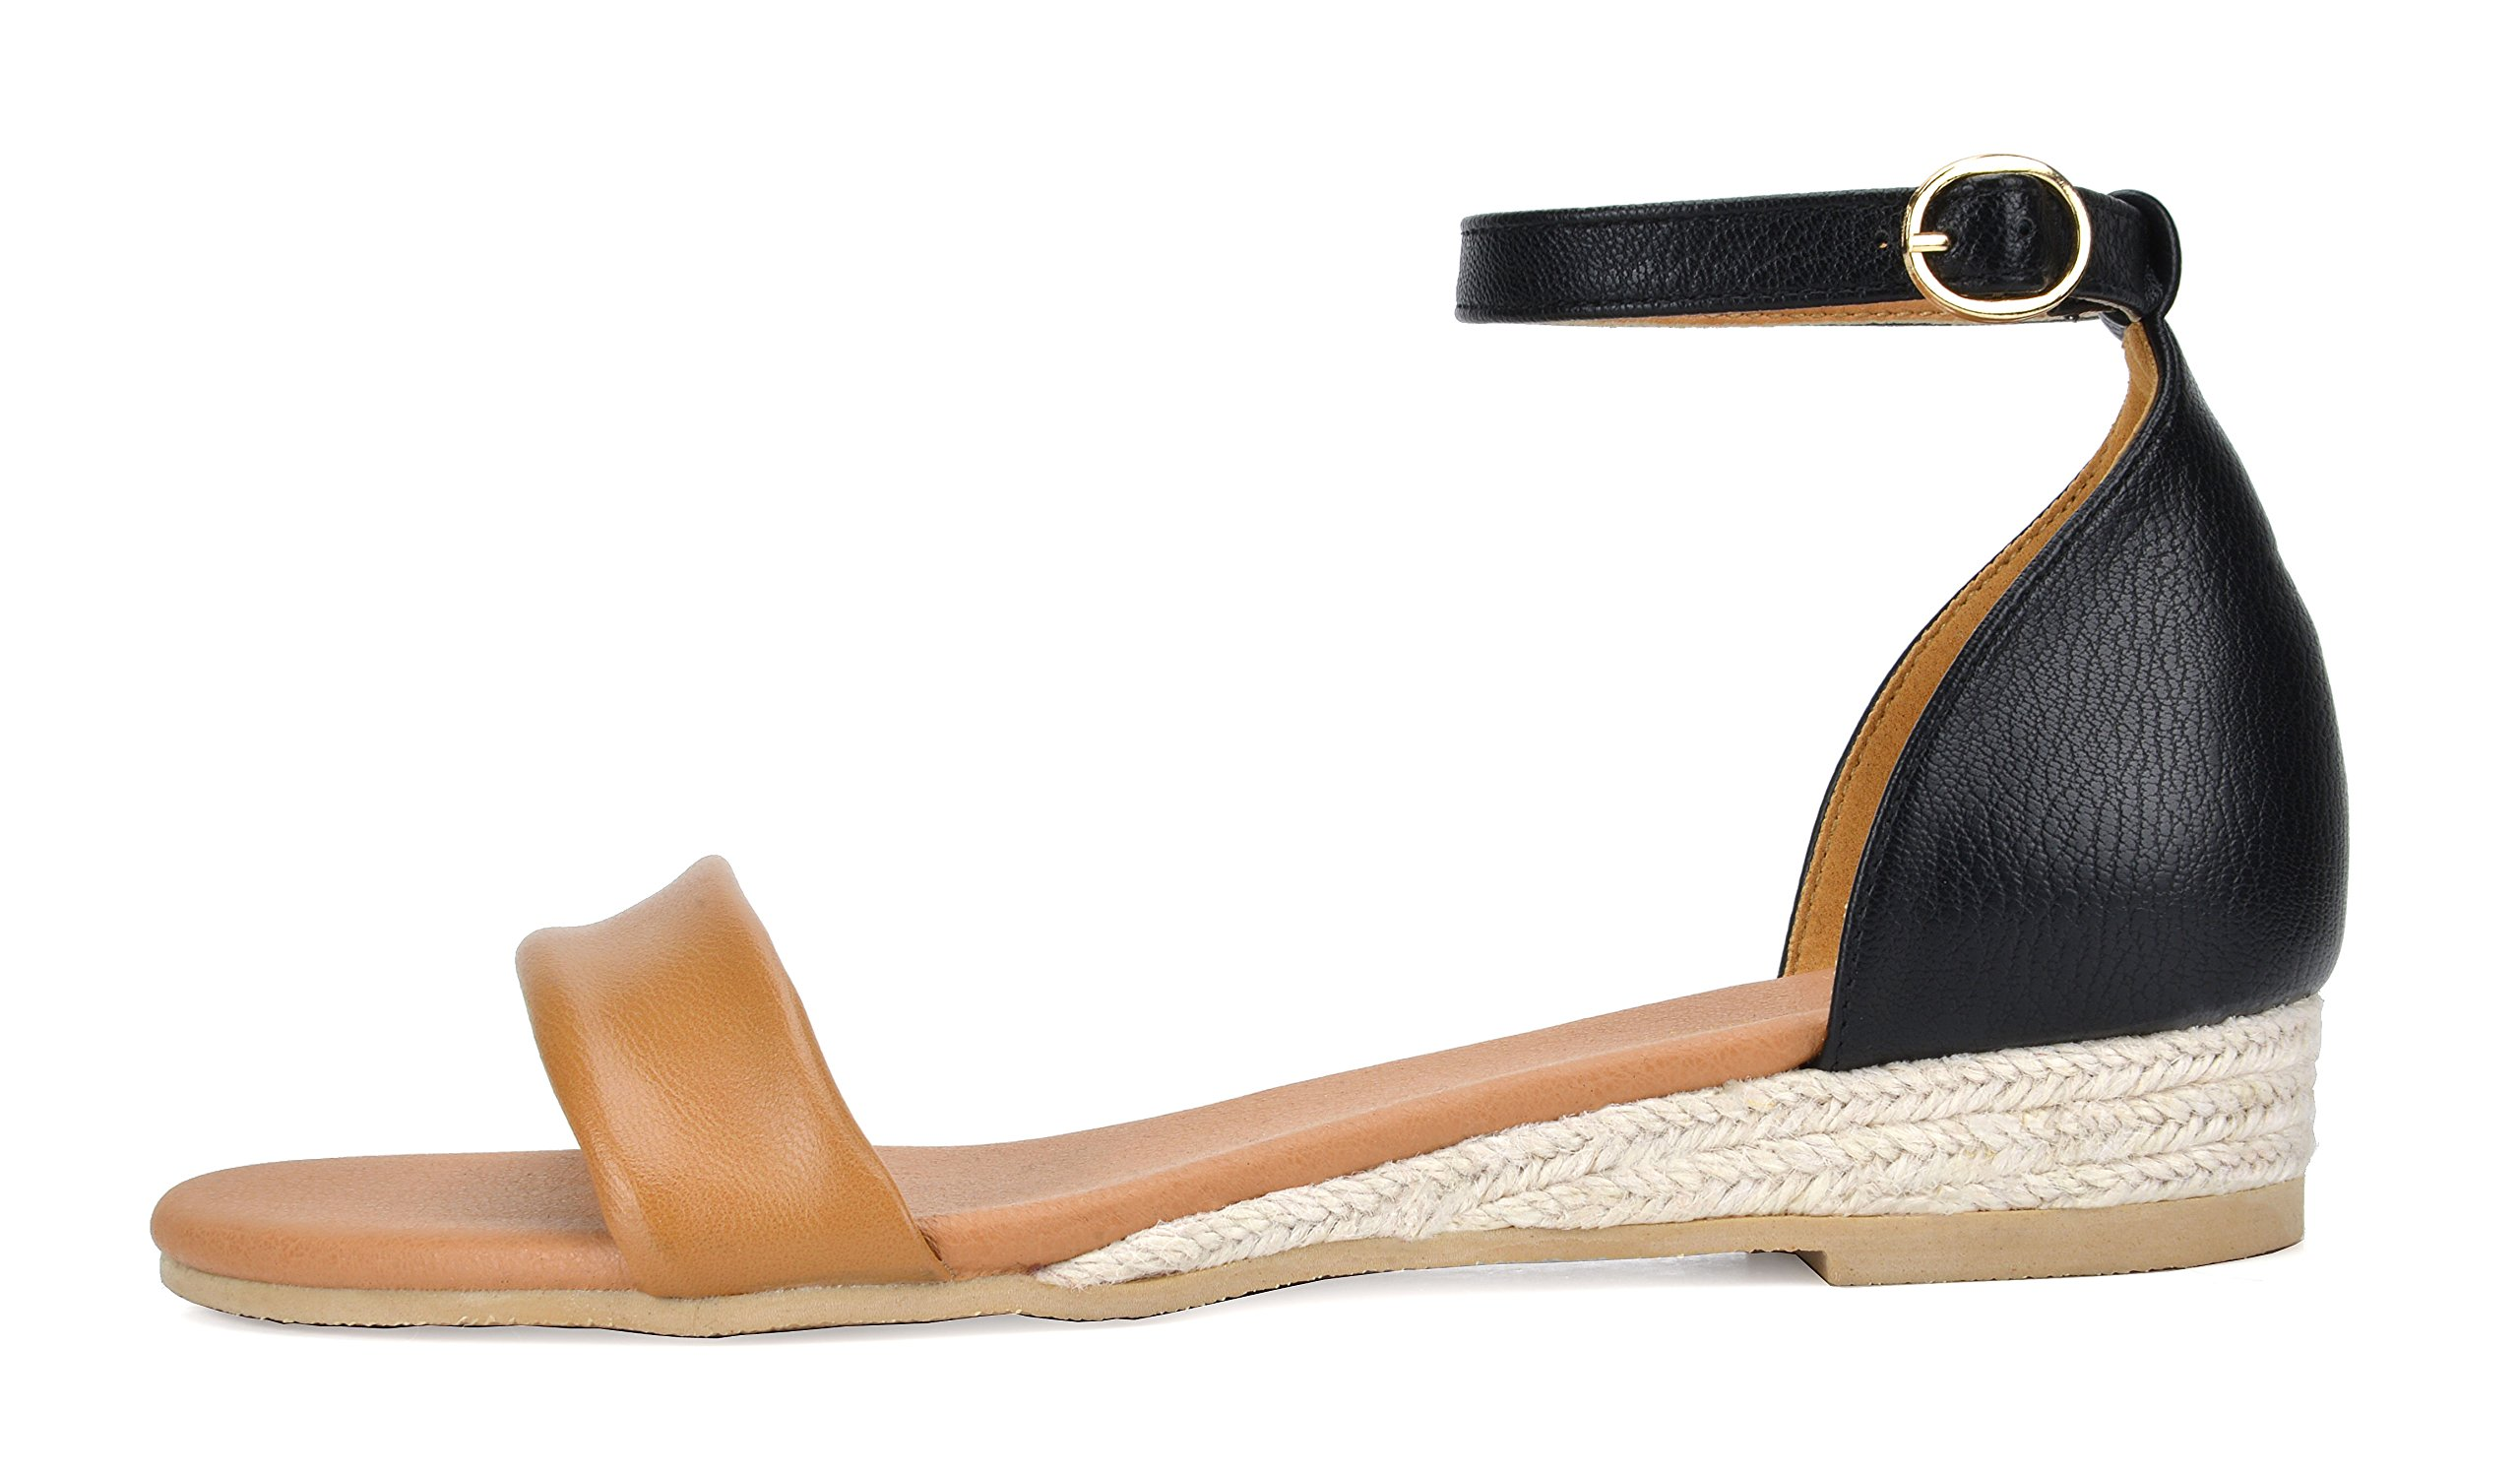 a1f7501403a22 Women FORMOSA_10 DREAM PAIRS Women's Low Wedge Sandals  DREAM PAIRS